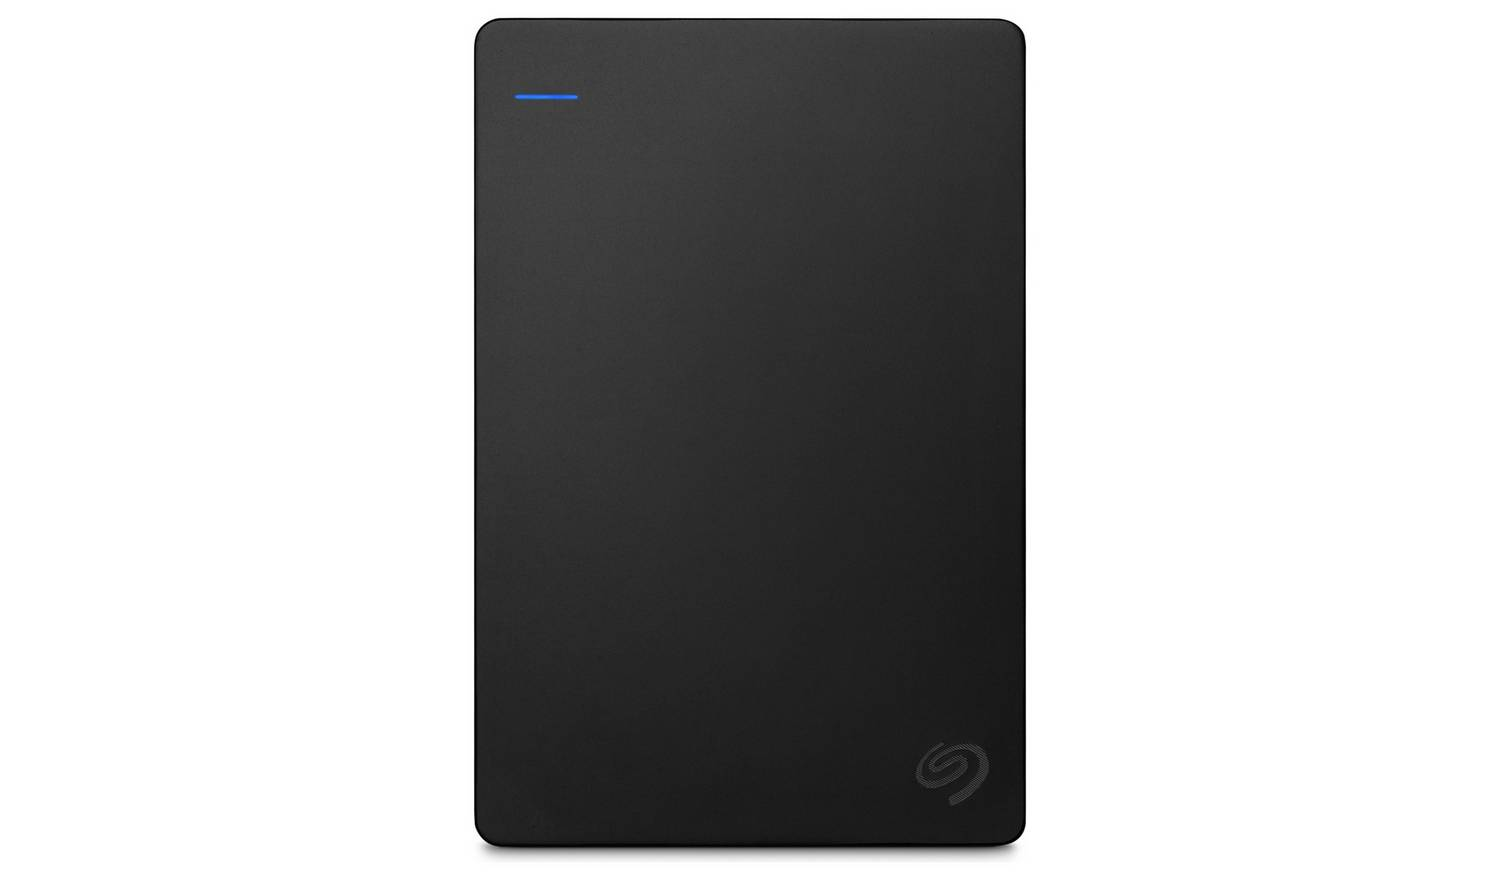 Seagate 2TB PS4 Gaming Hard Drive